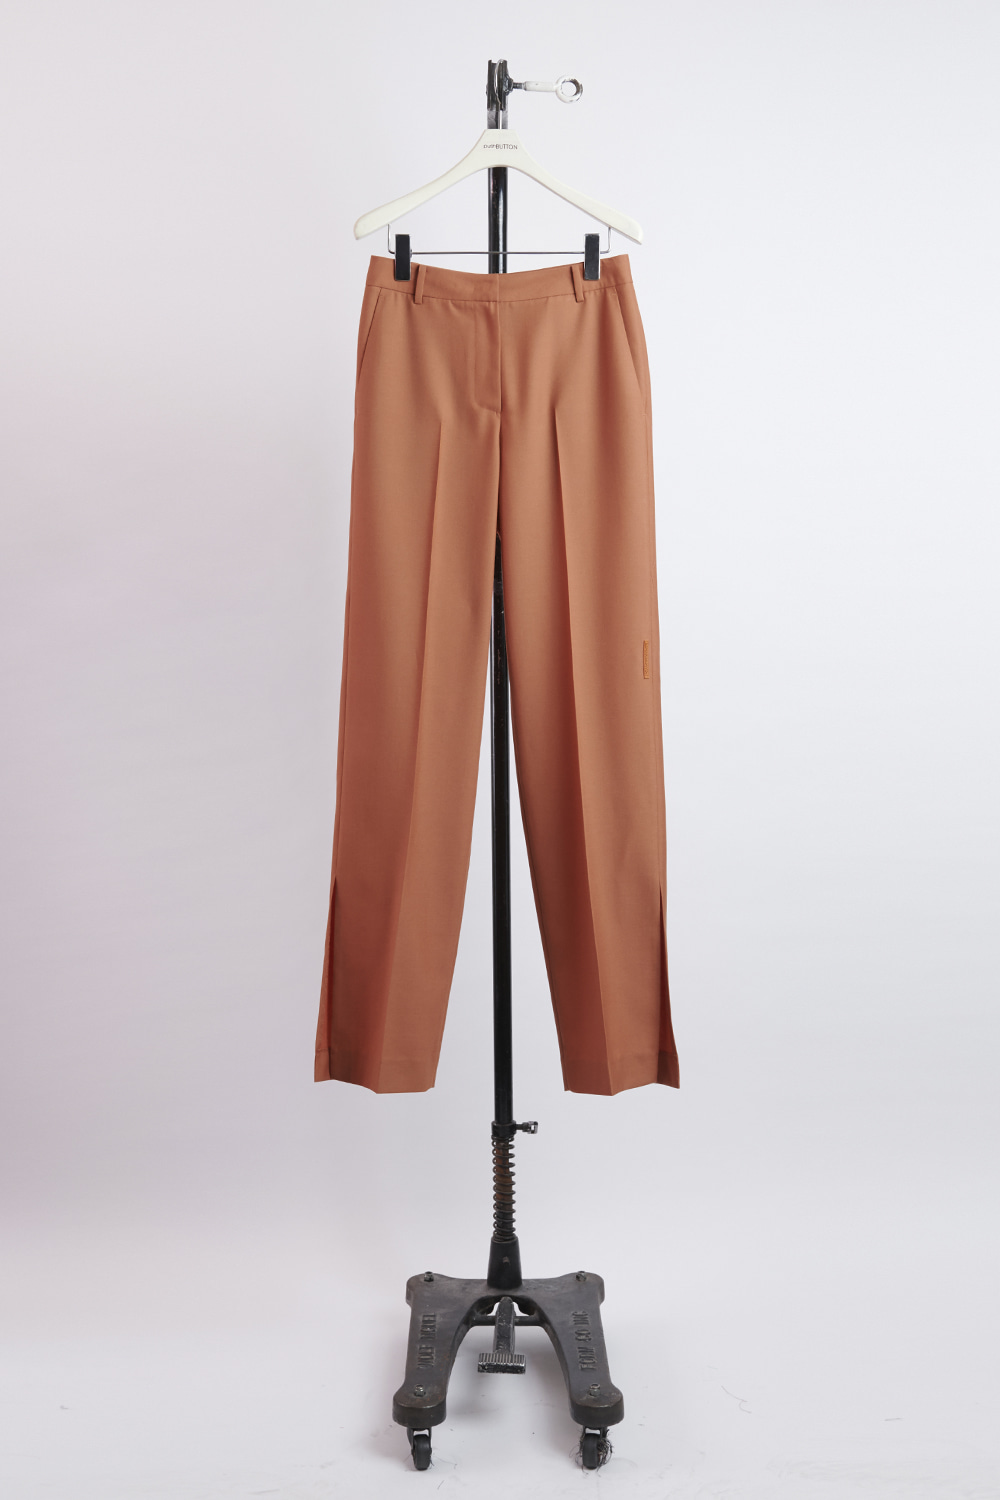 HS21 BROWN SLIT HEM TROUSERS